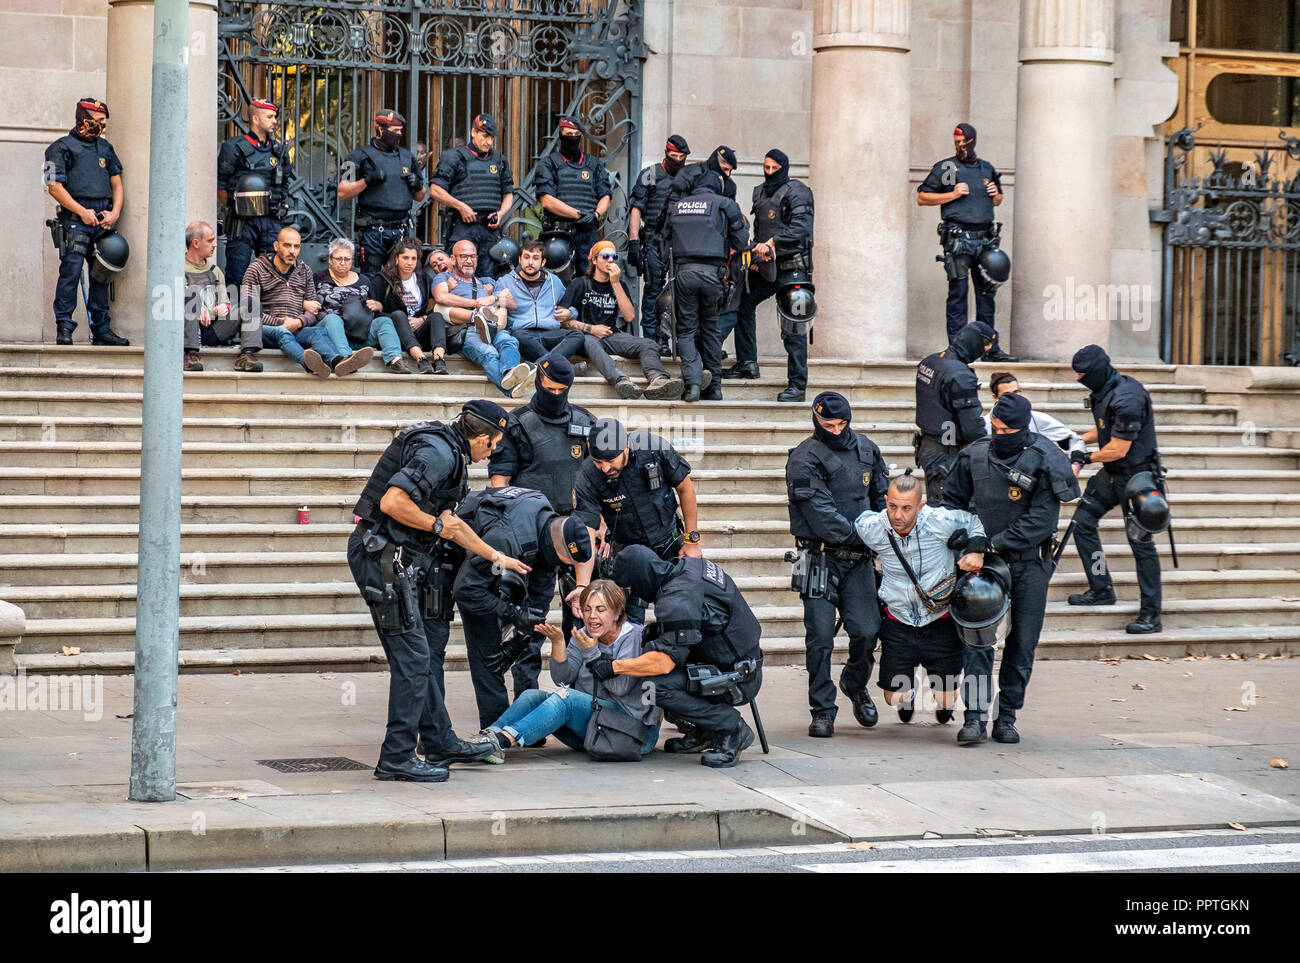 Barcelona, Catalonia, Spain  27th Sep, 2018  A group of